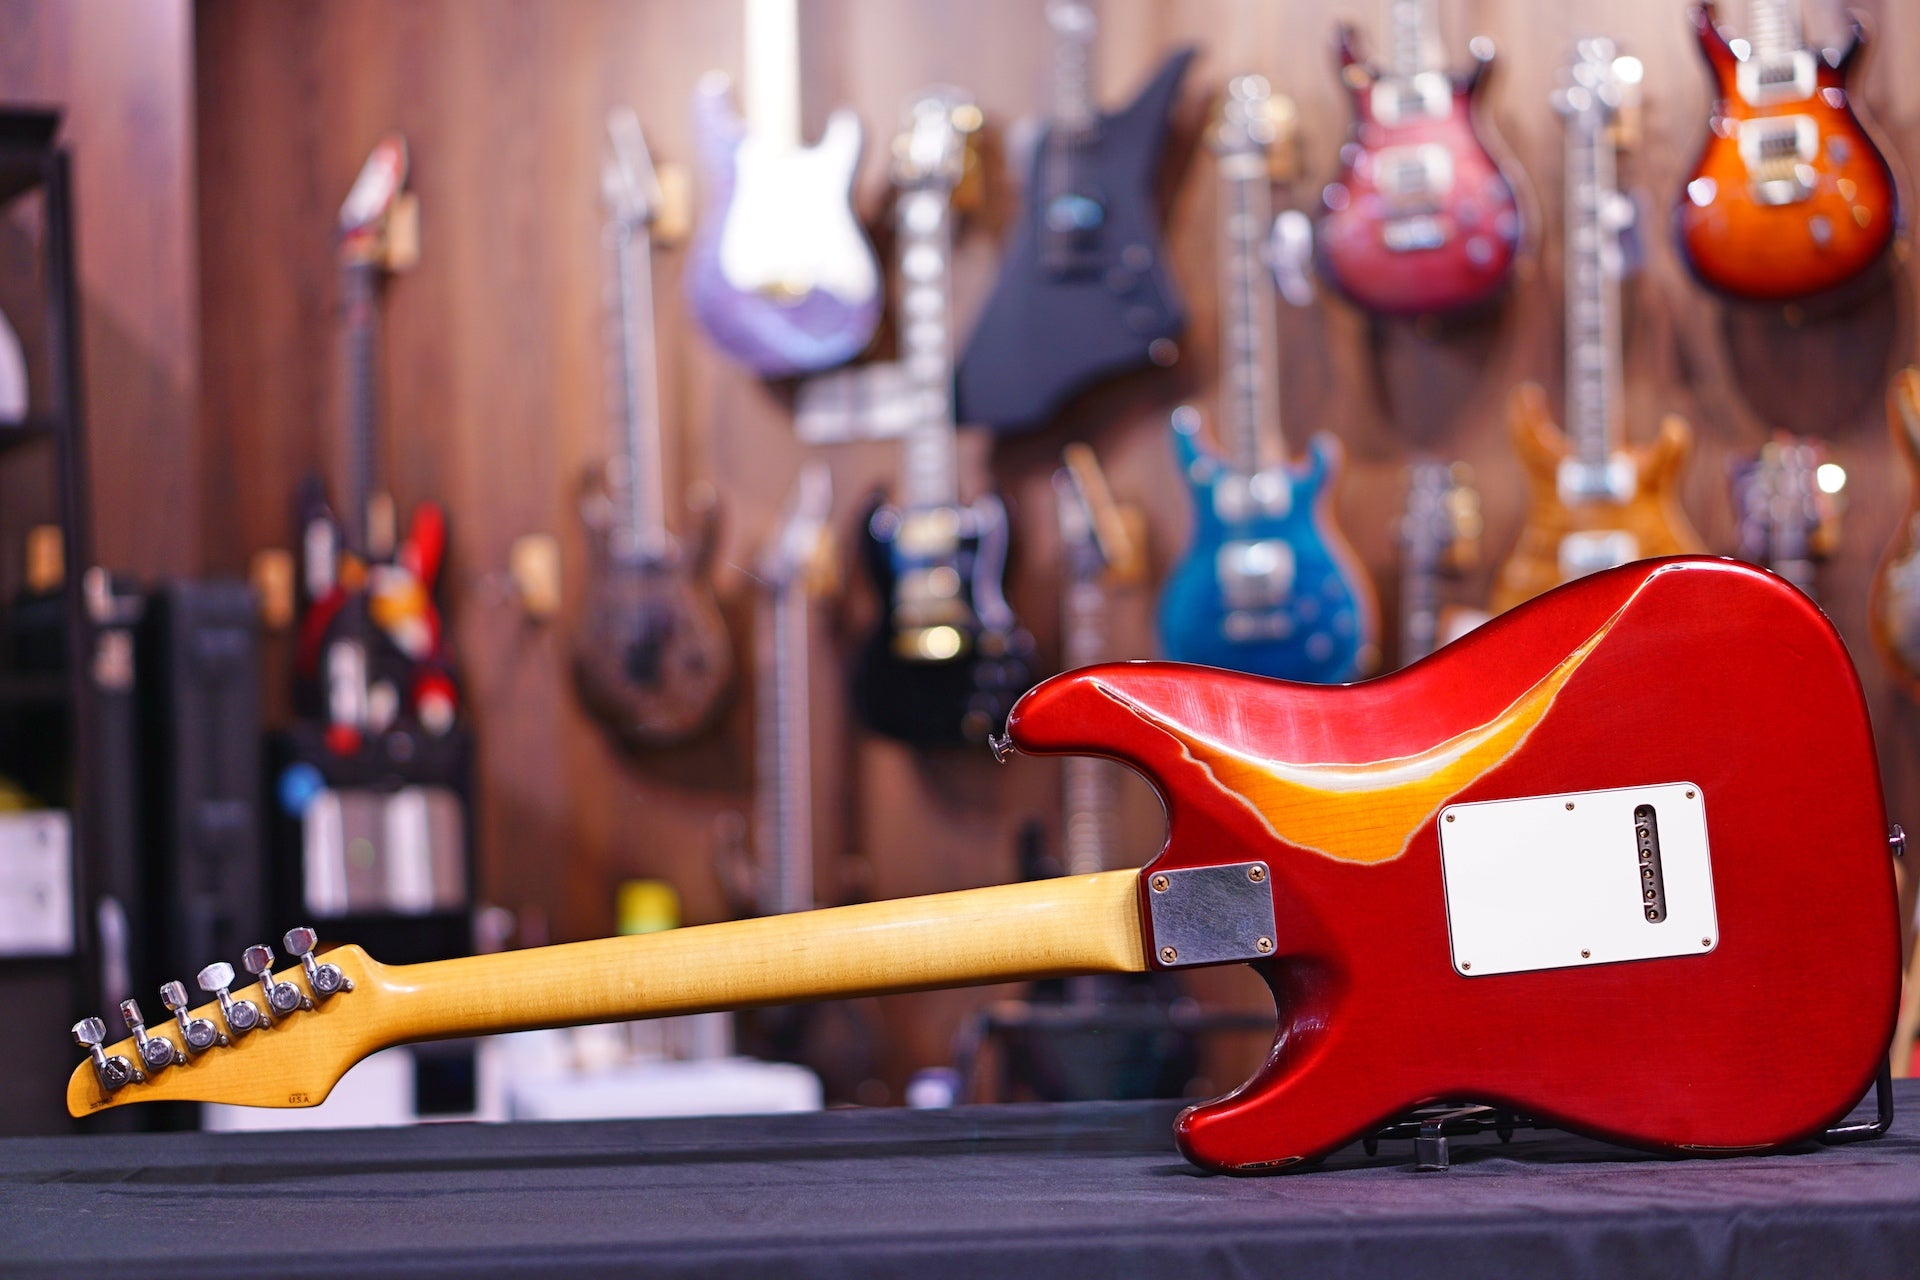 Suhr Classic Antique Finish Over Finish Candy Apple Red Js7N6J SUHR - HIENDGUITAR.COM